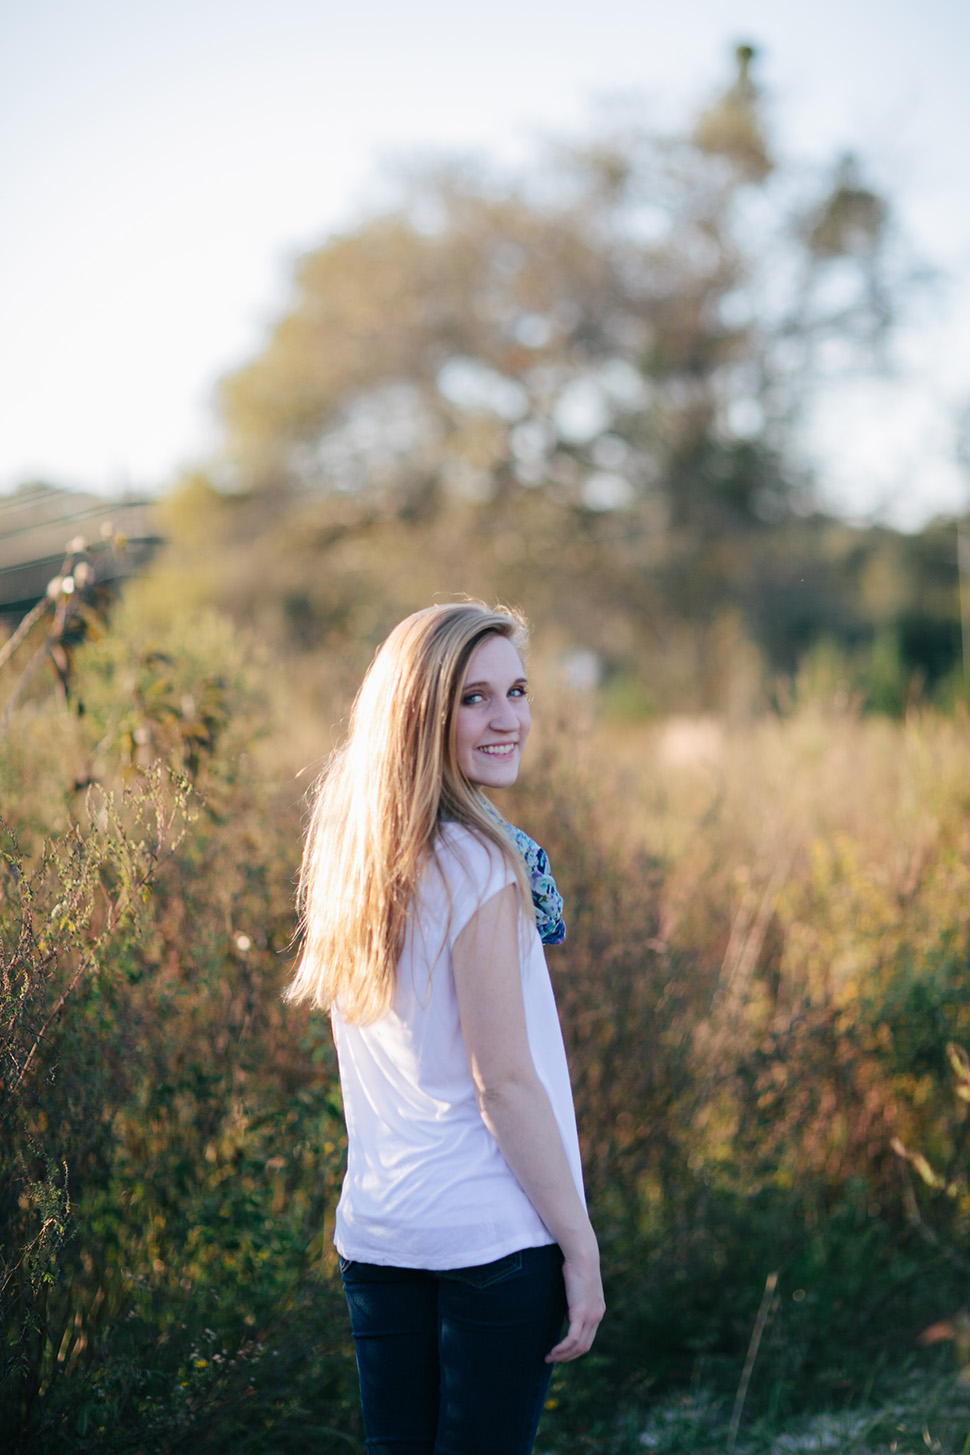 A_SeniorSession_1027_0810.jpg